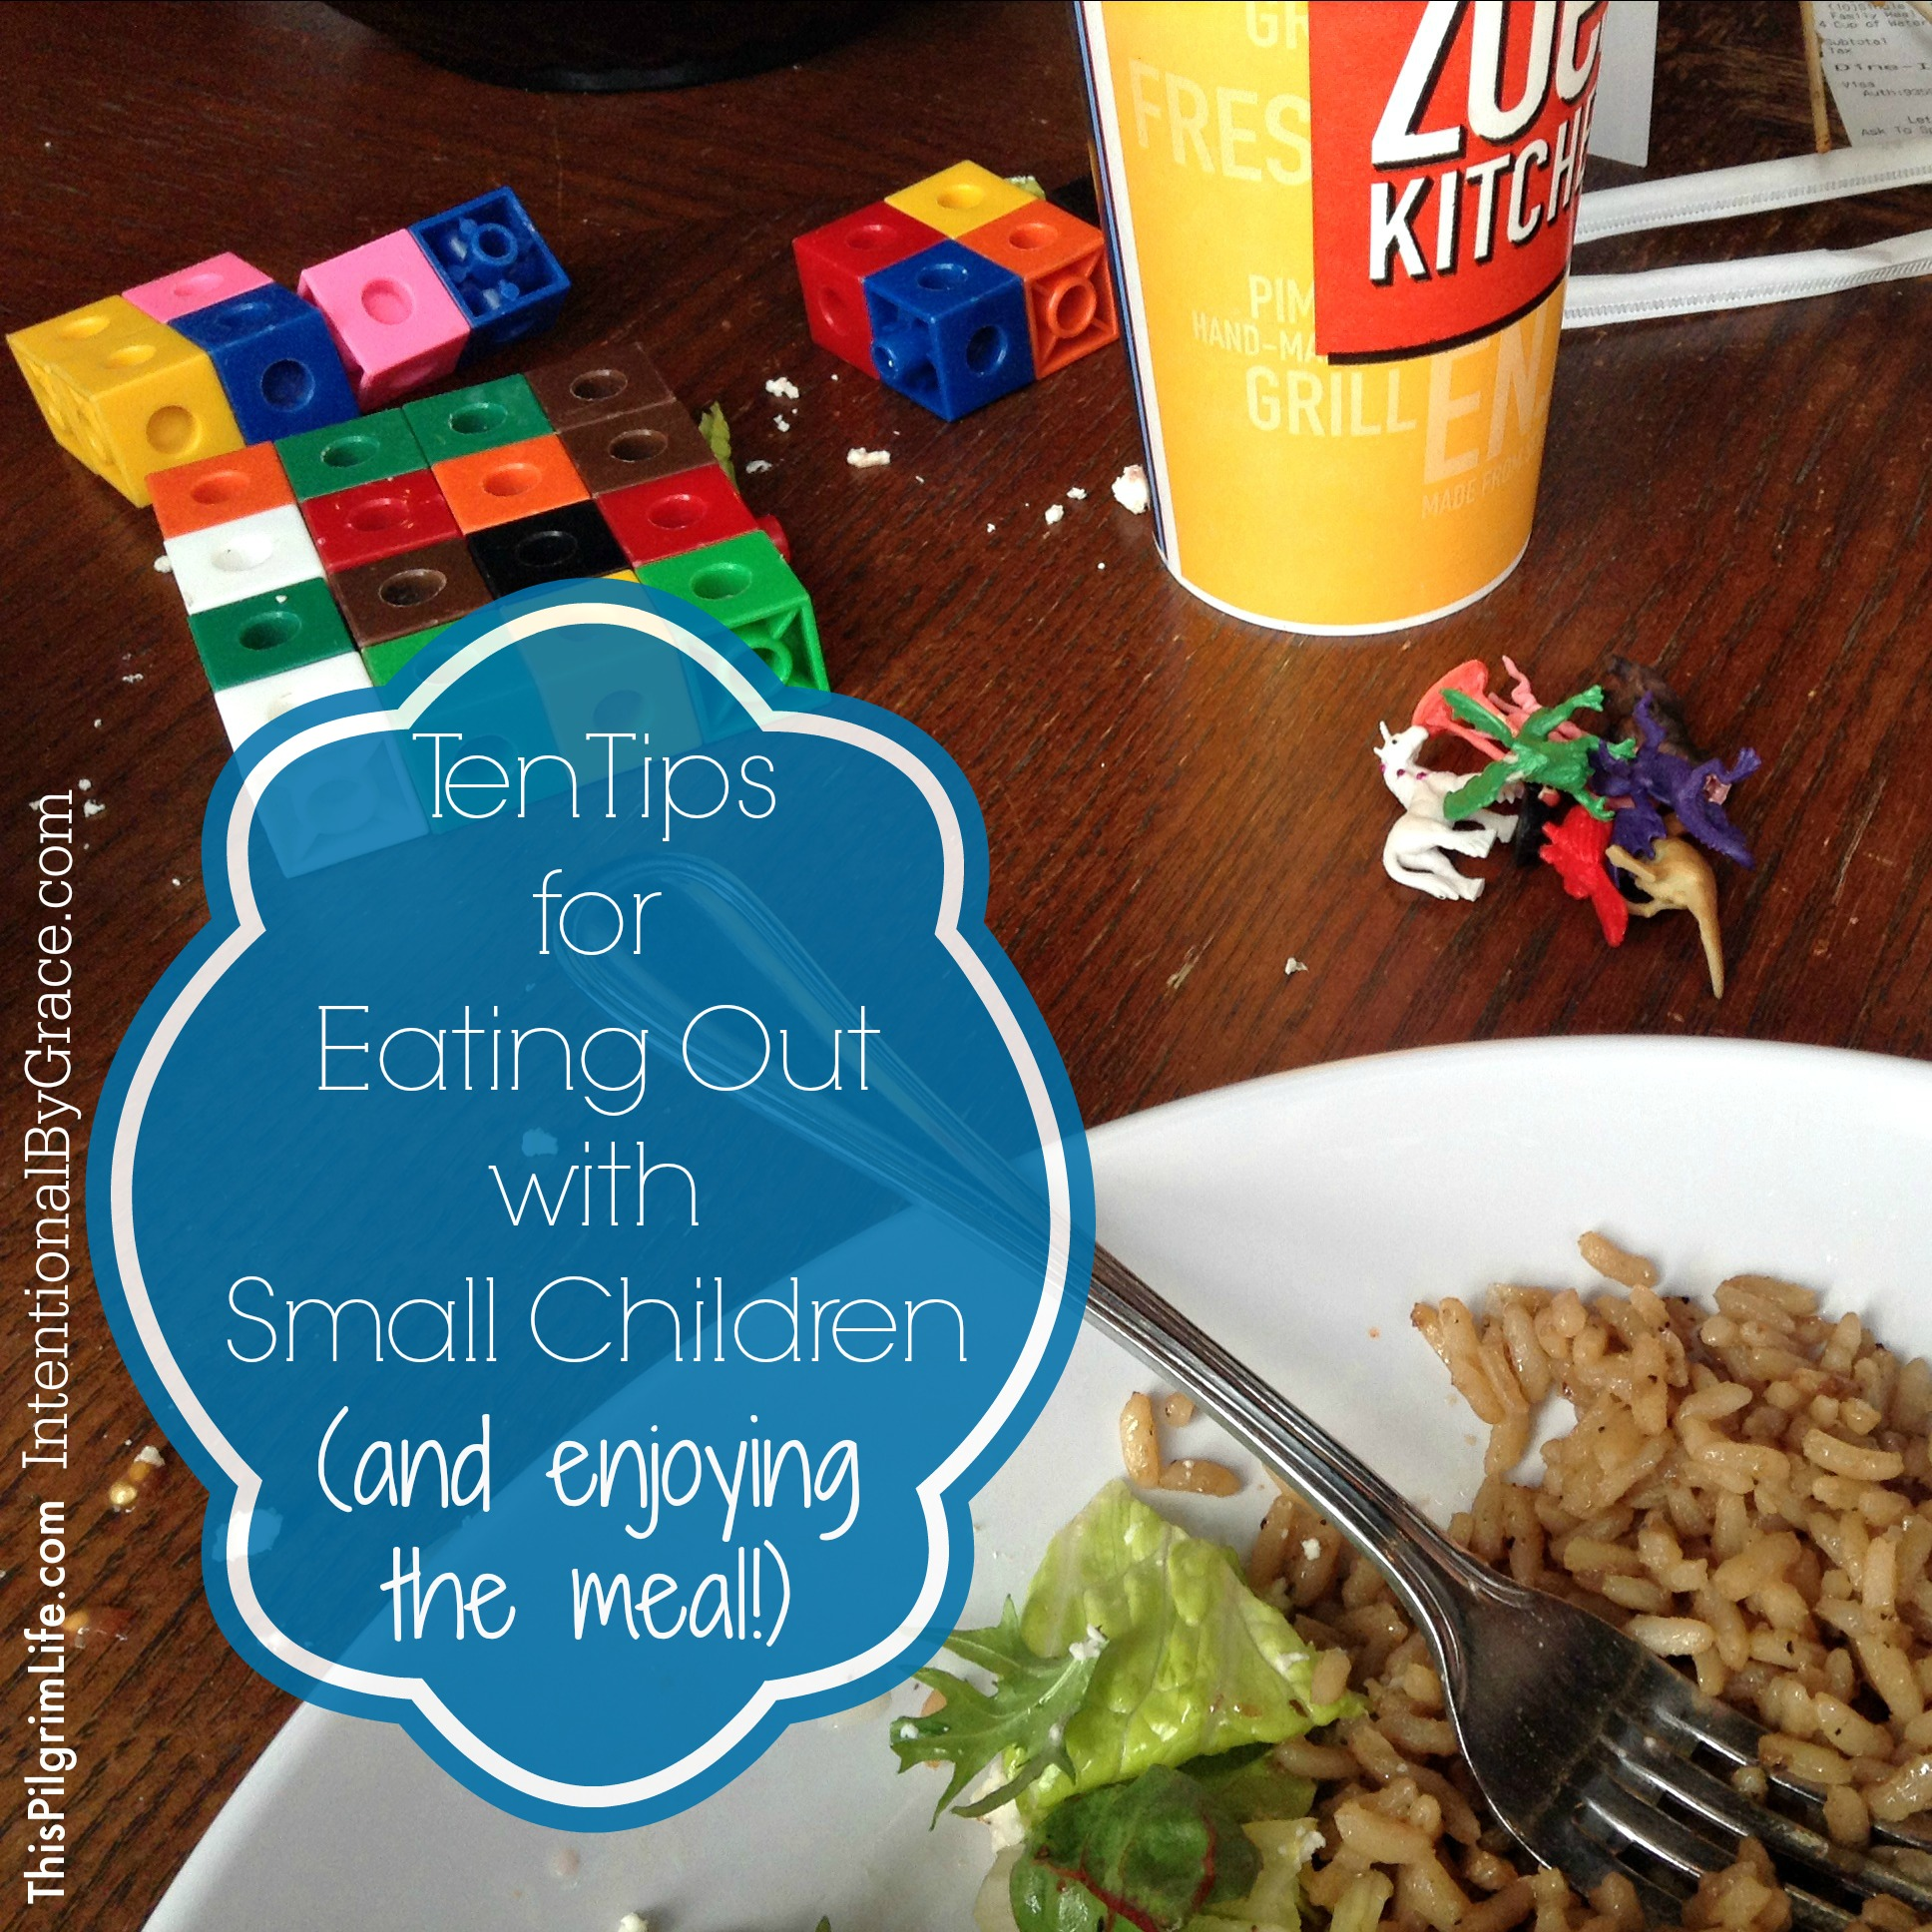 Ten Tips for Eating Out with Small Children1